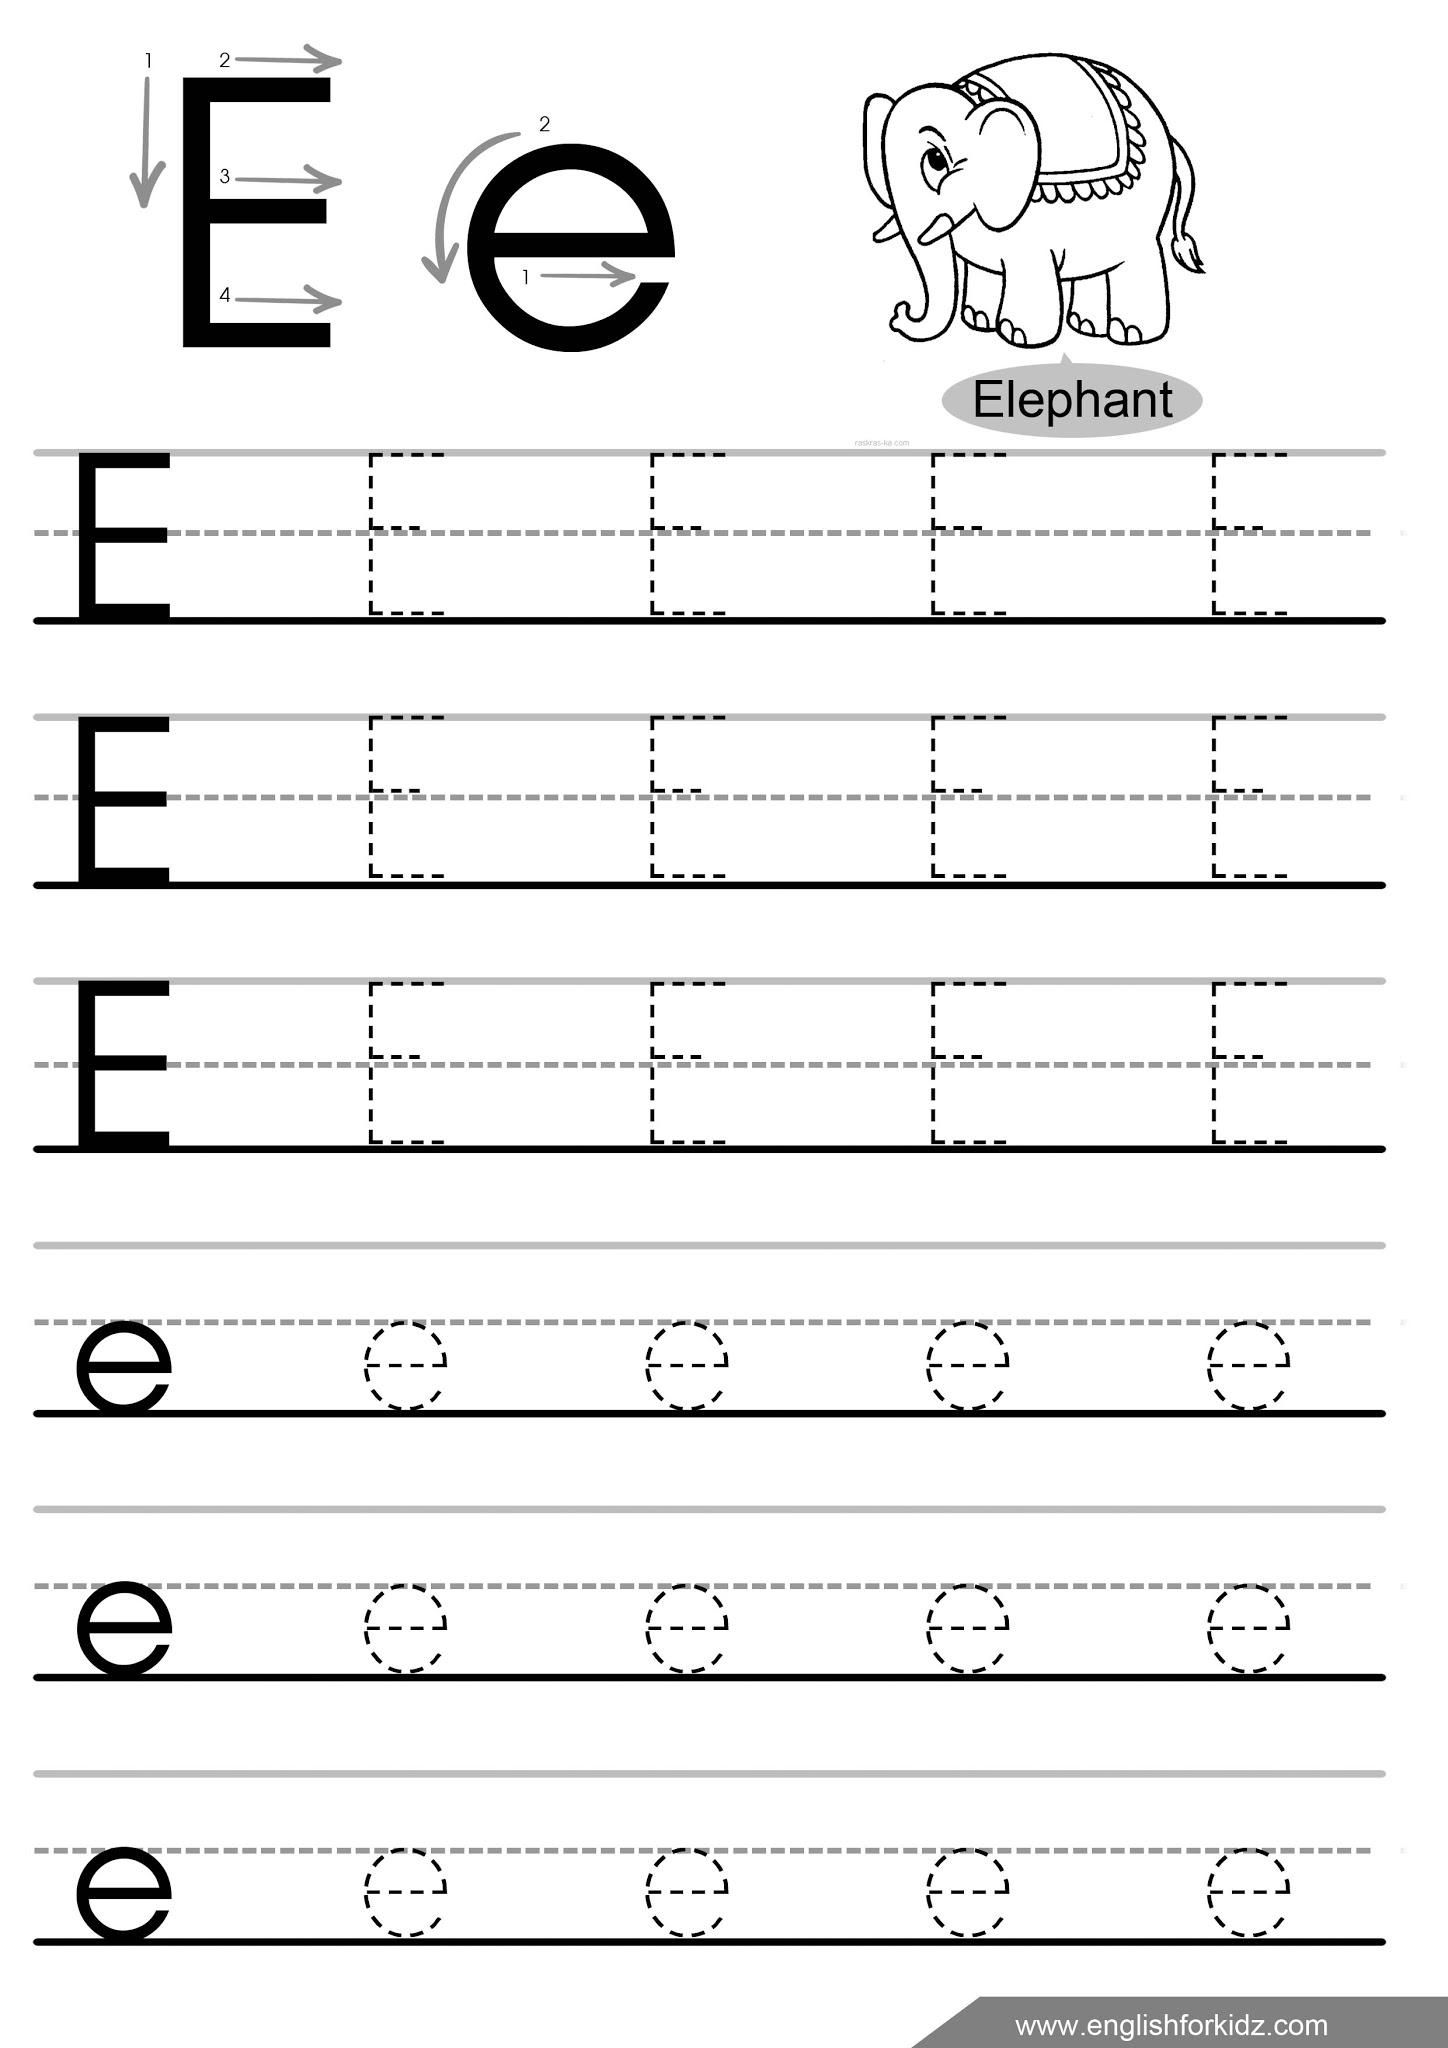 16 Letter E Tracing Worksheets For Preschool In 2020 Tracing Worksheets Preschool Tracing Letters Preschool Letter Tracing Worksheets